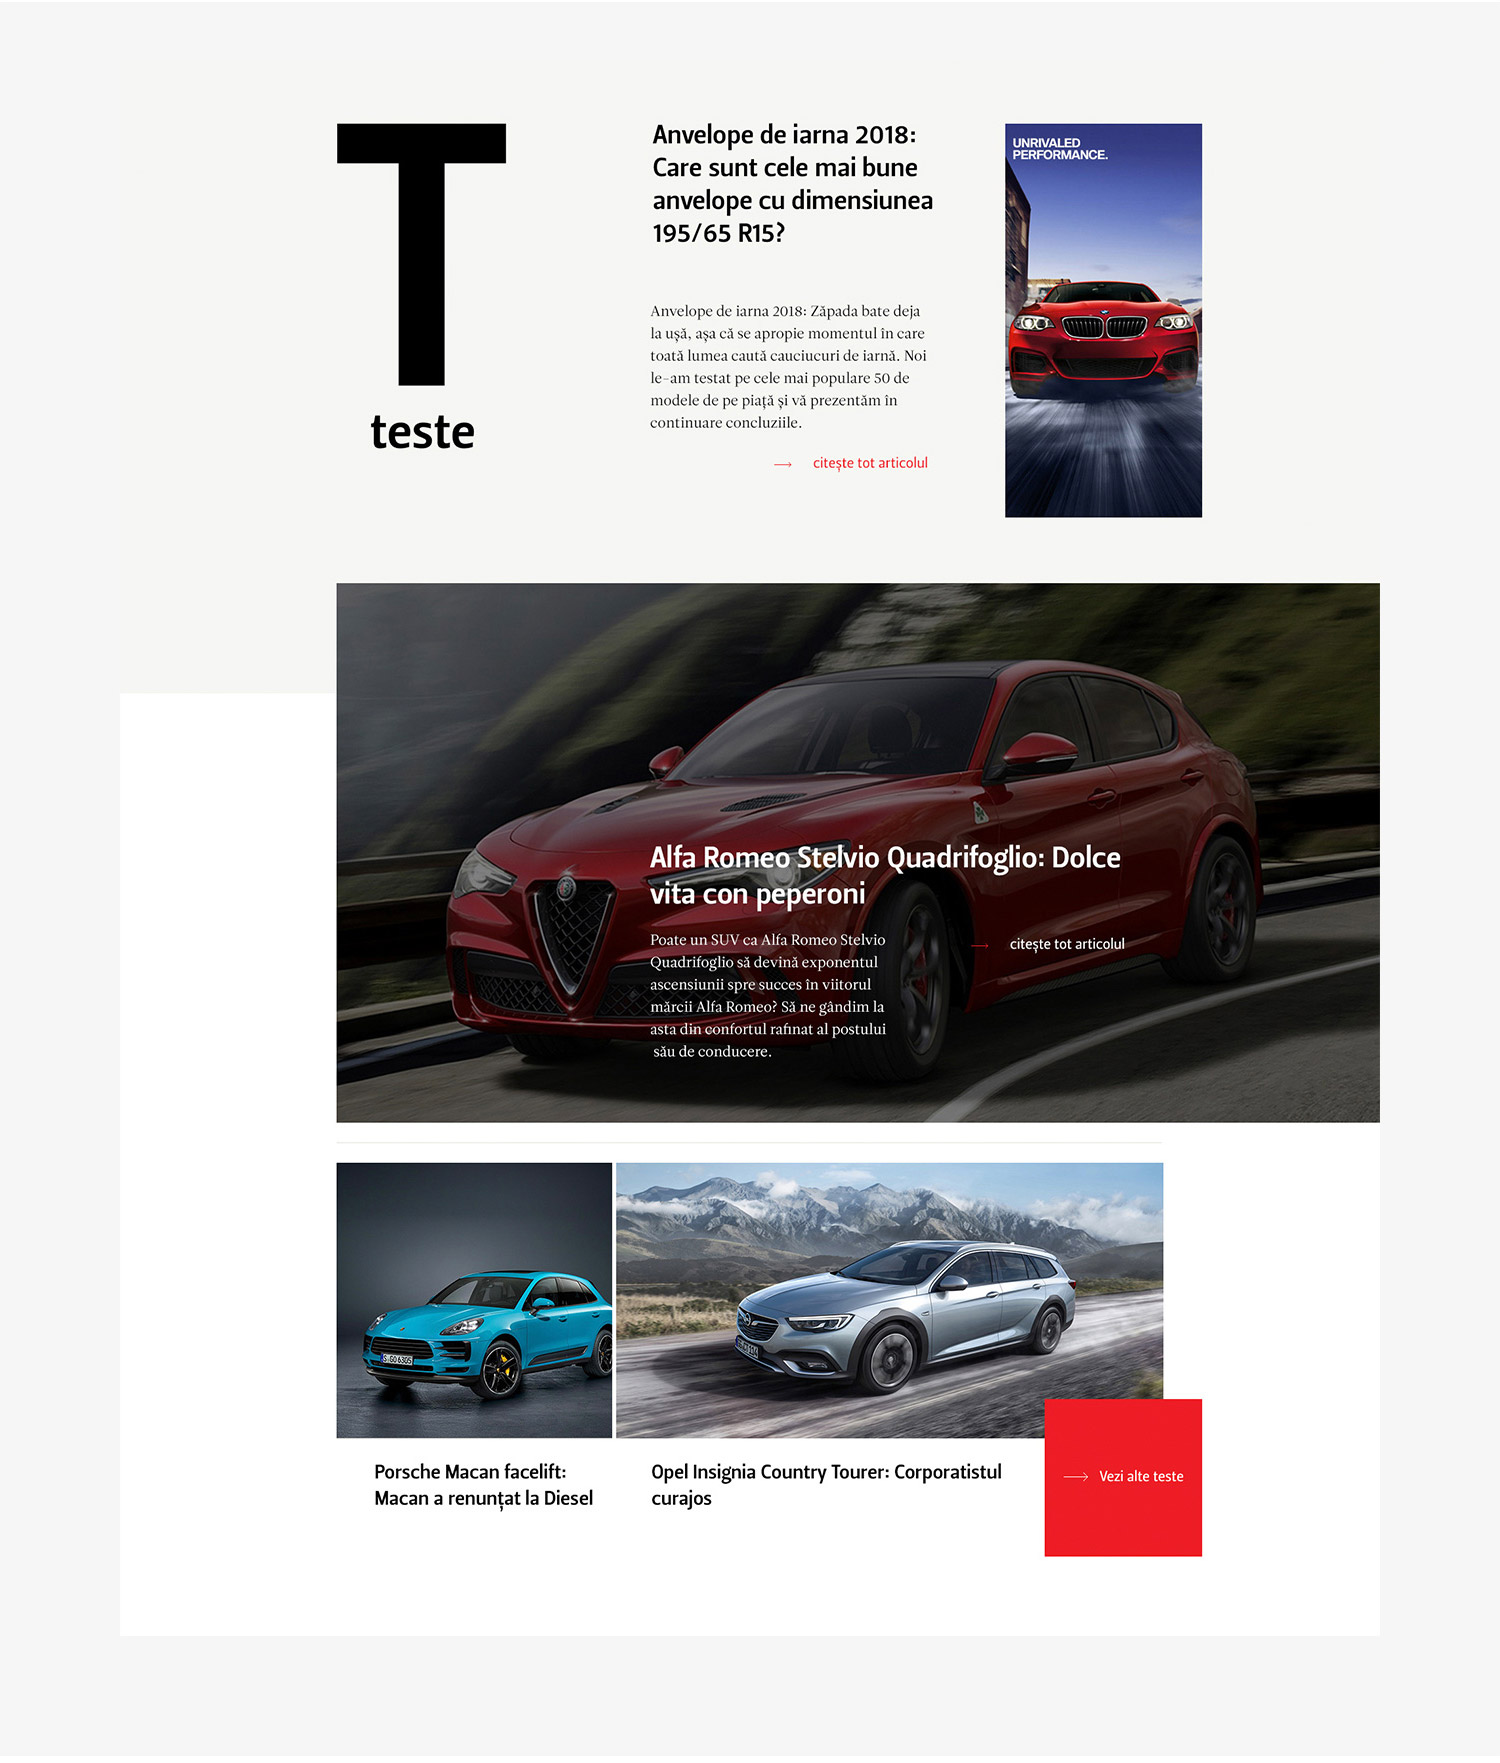 testing_cars_category_details